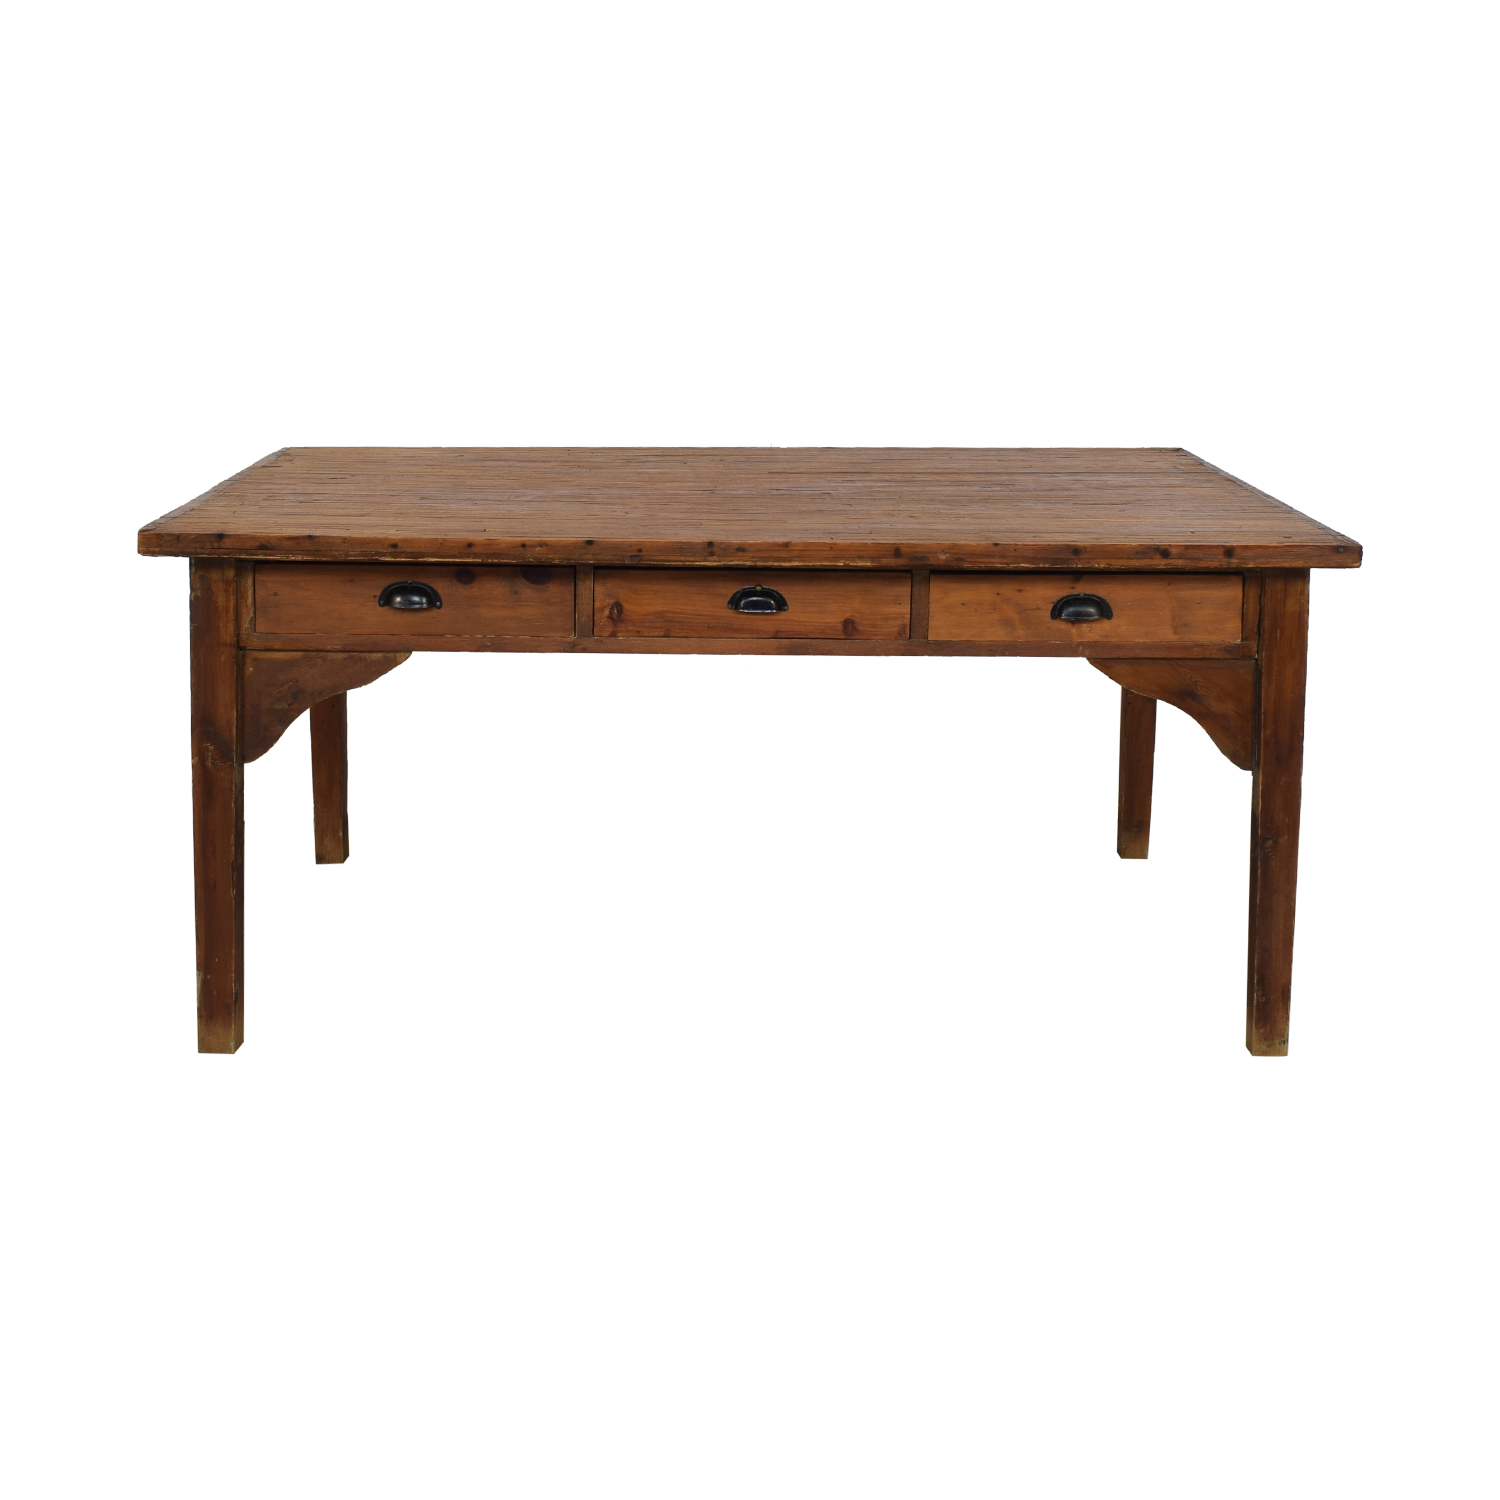 Handmade Spanish Dining Table / Dinner Tables